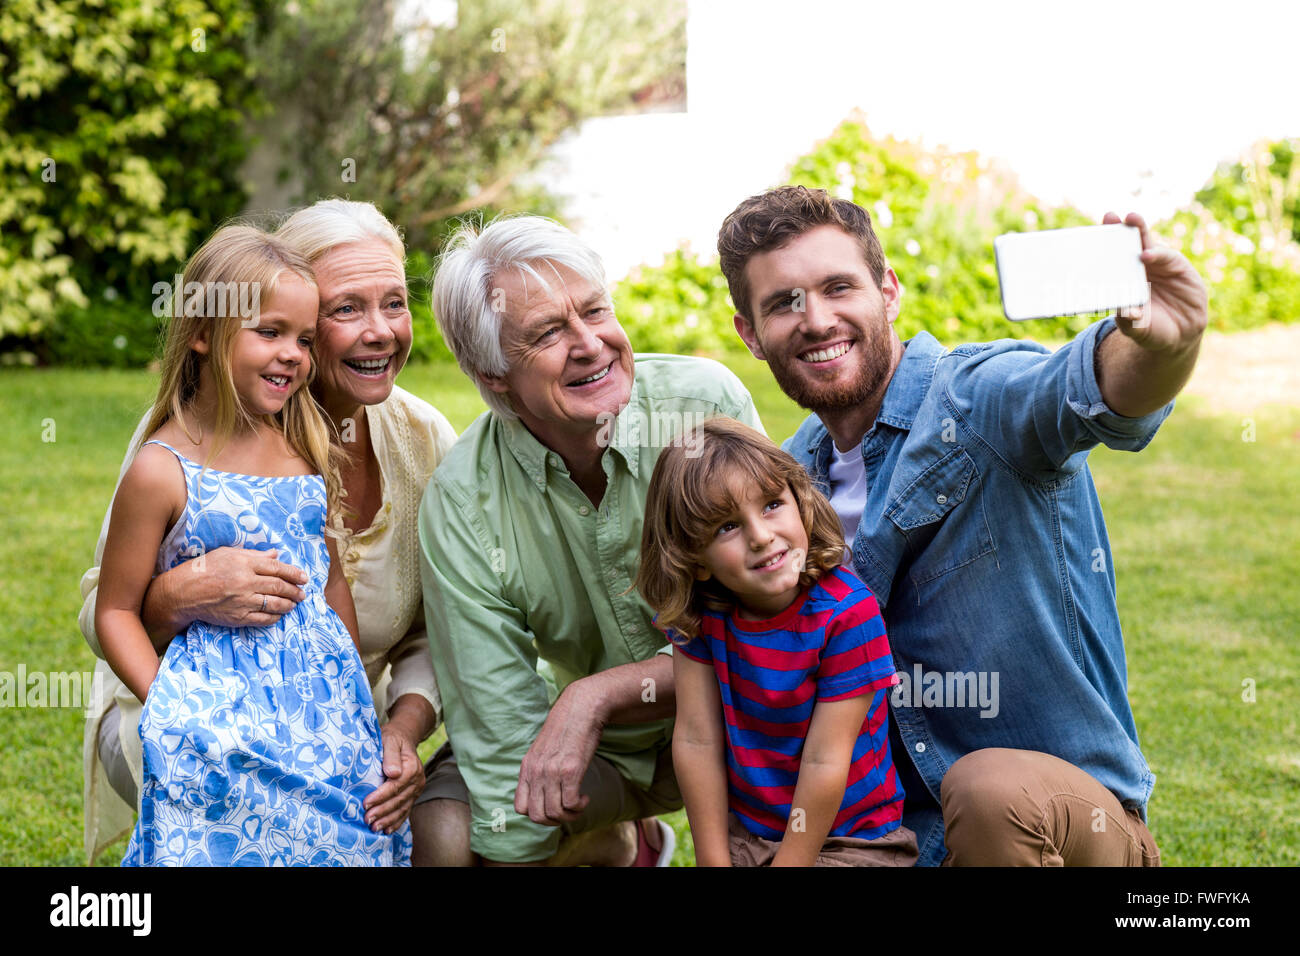 Happy father taking selfie with family in yard - Stock Image